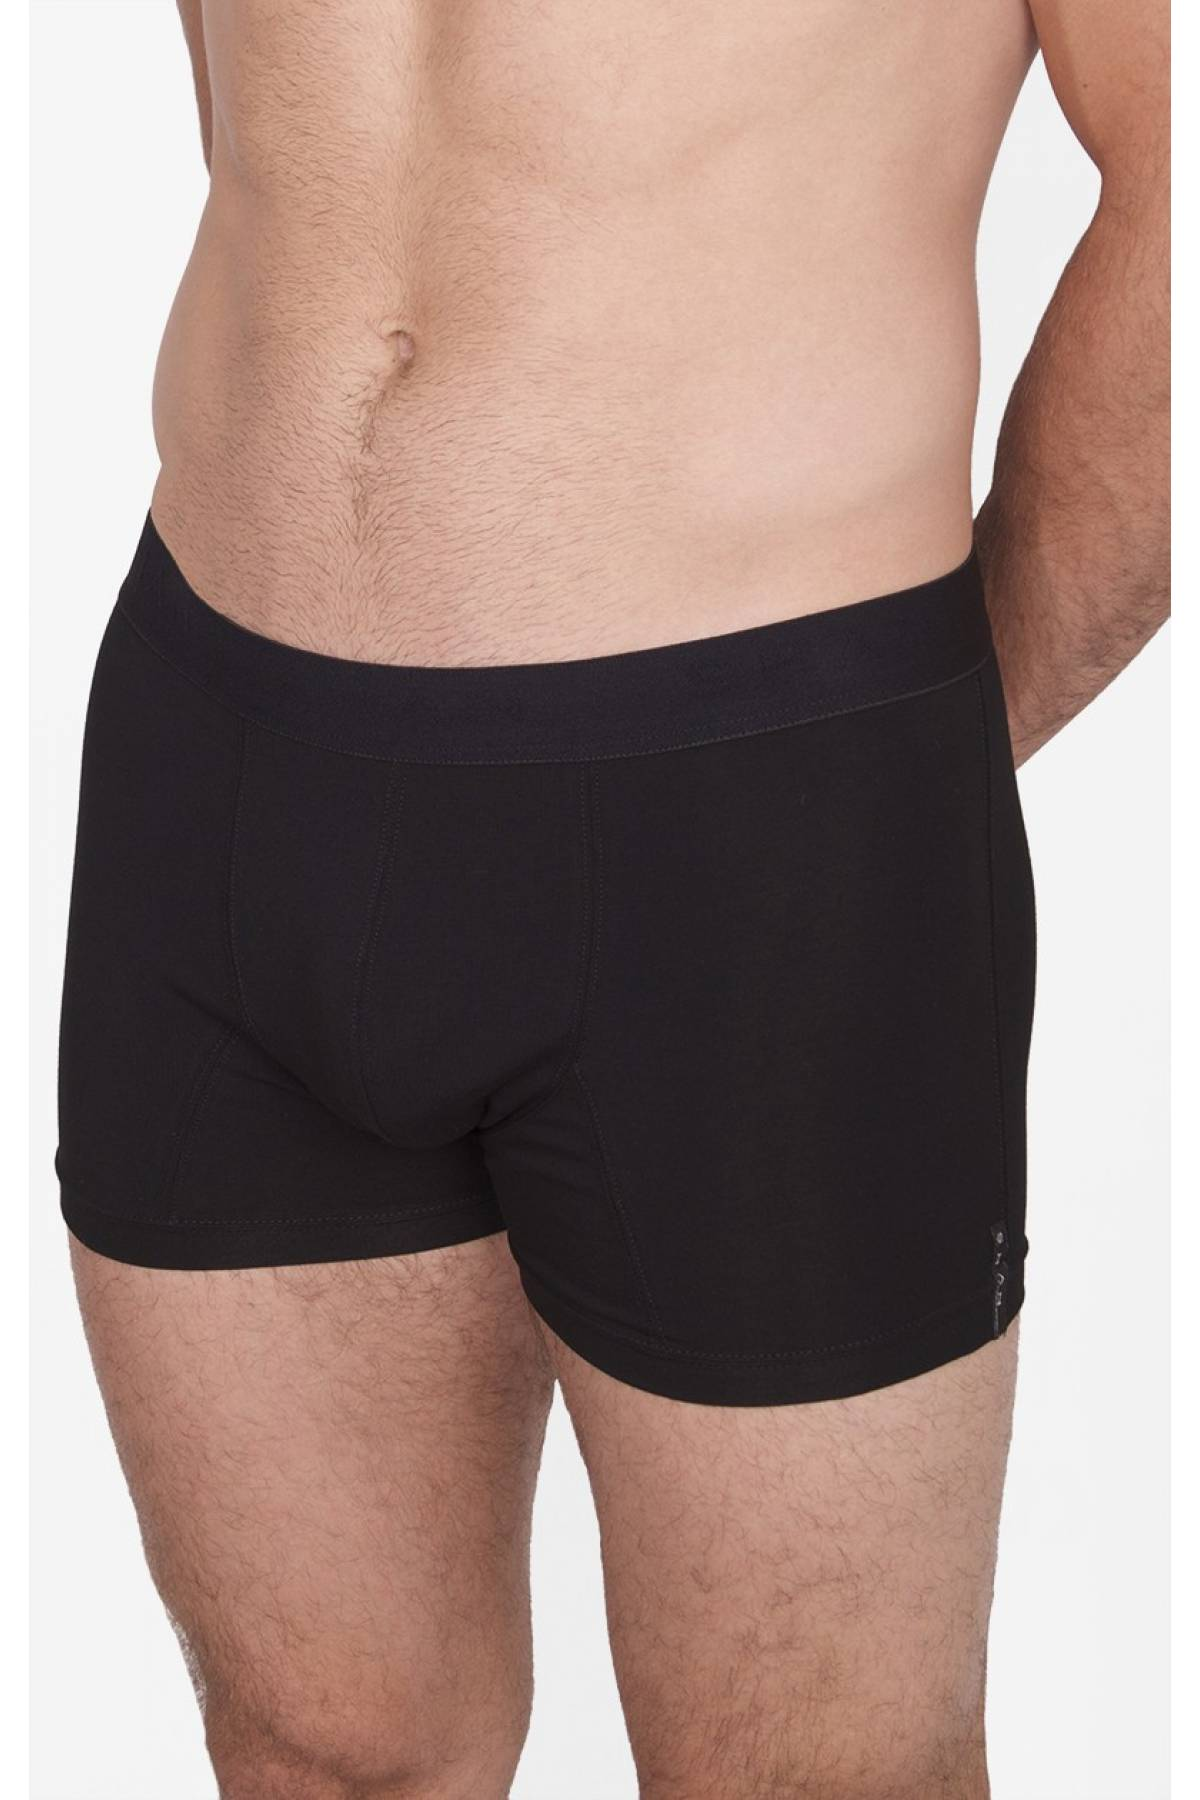 Shan Minimale Boxer brief